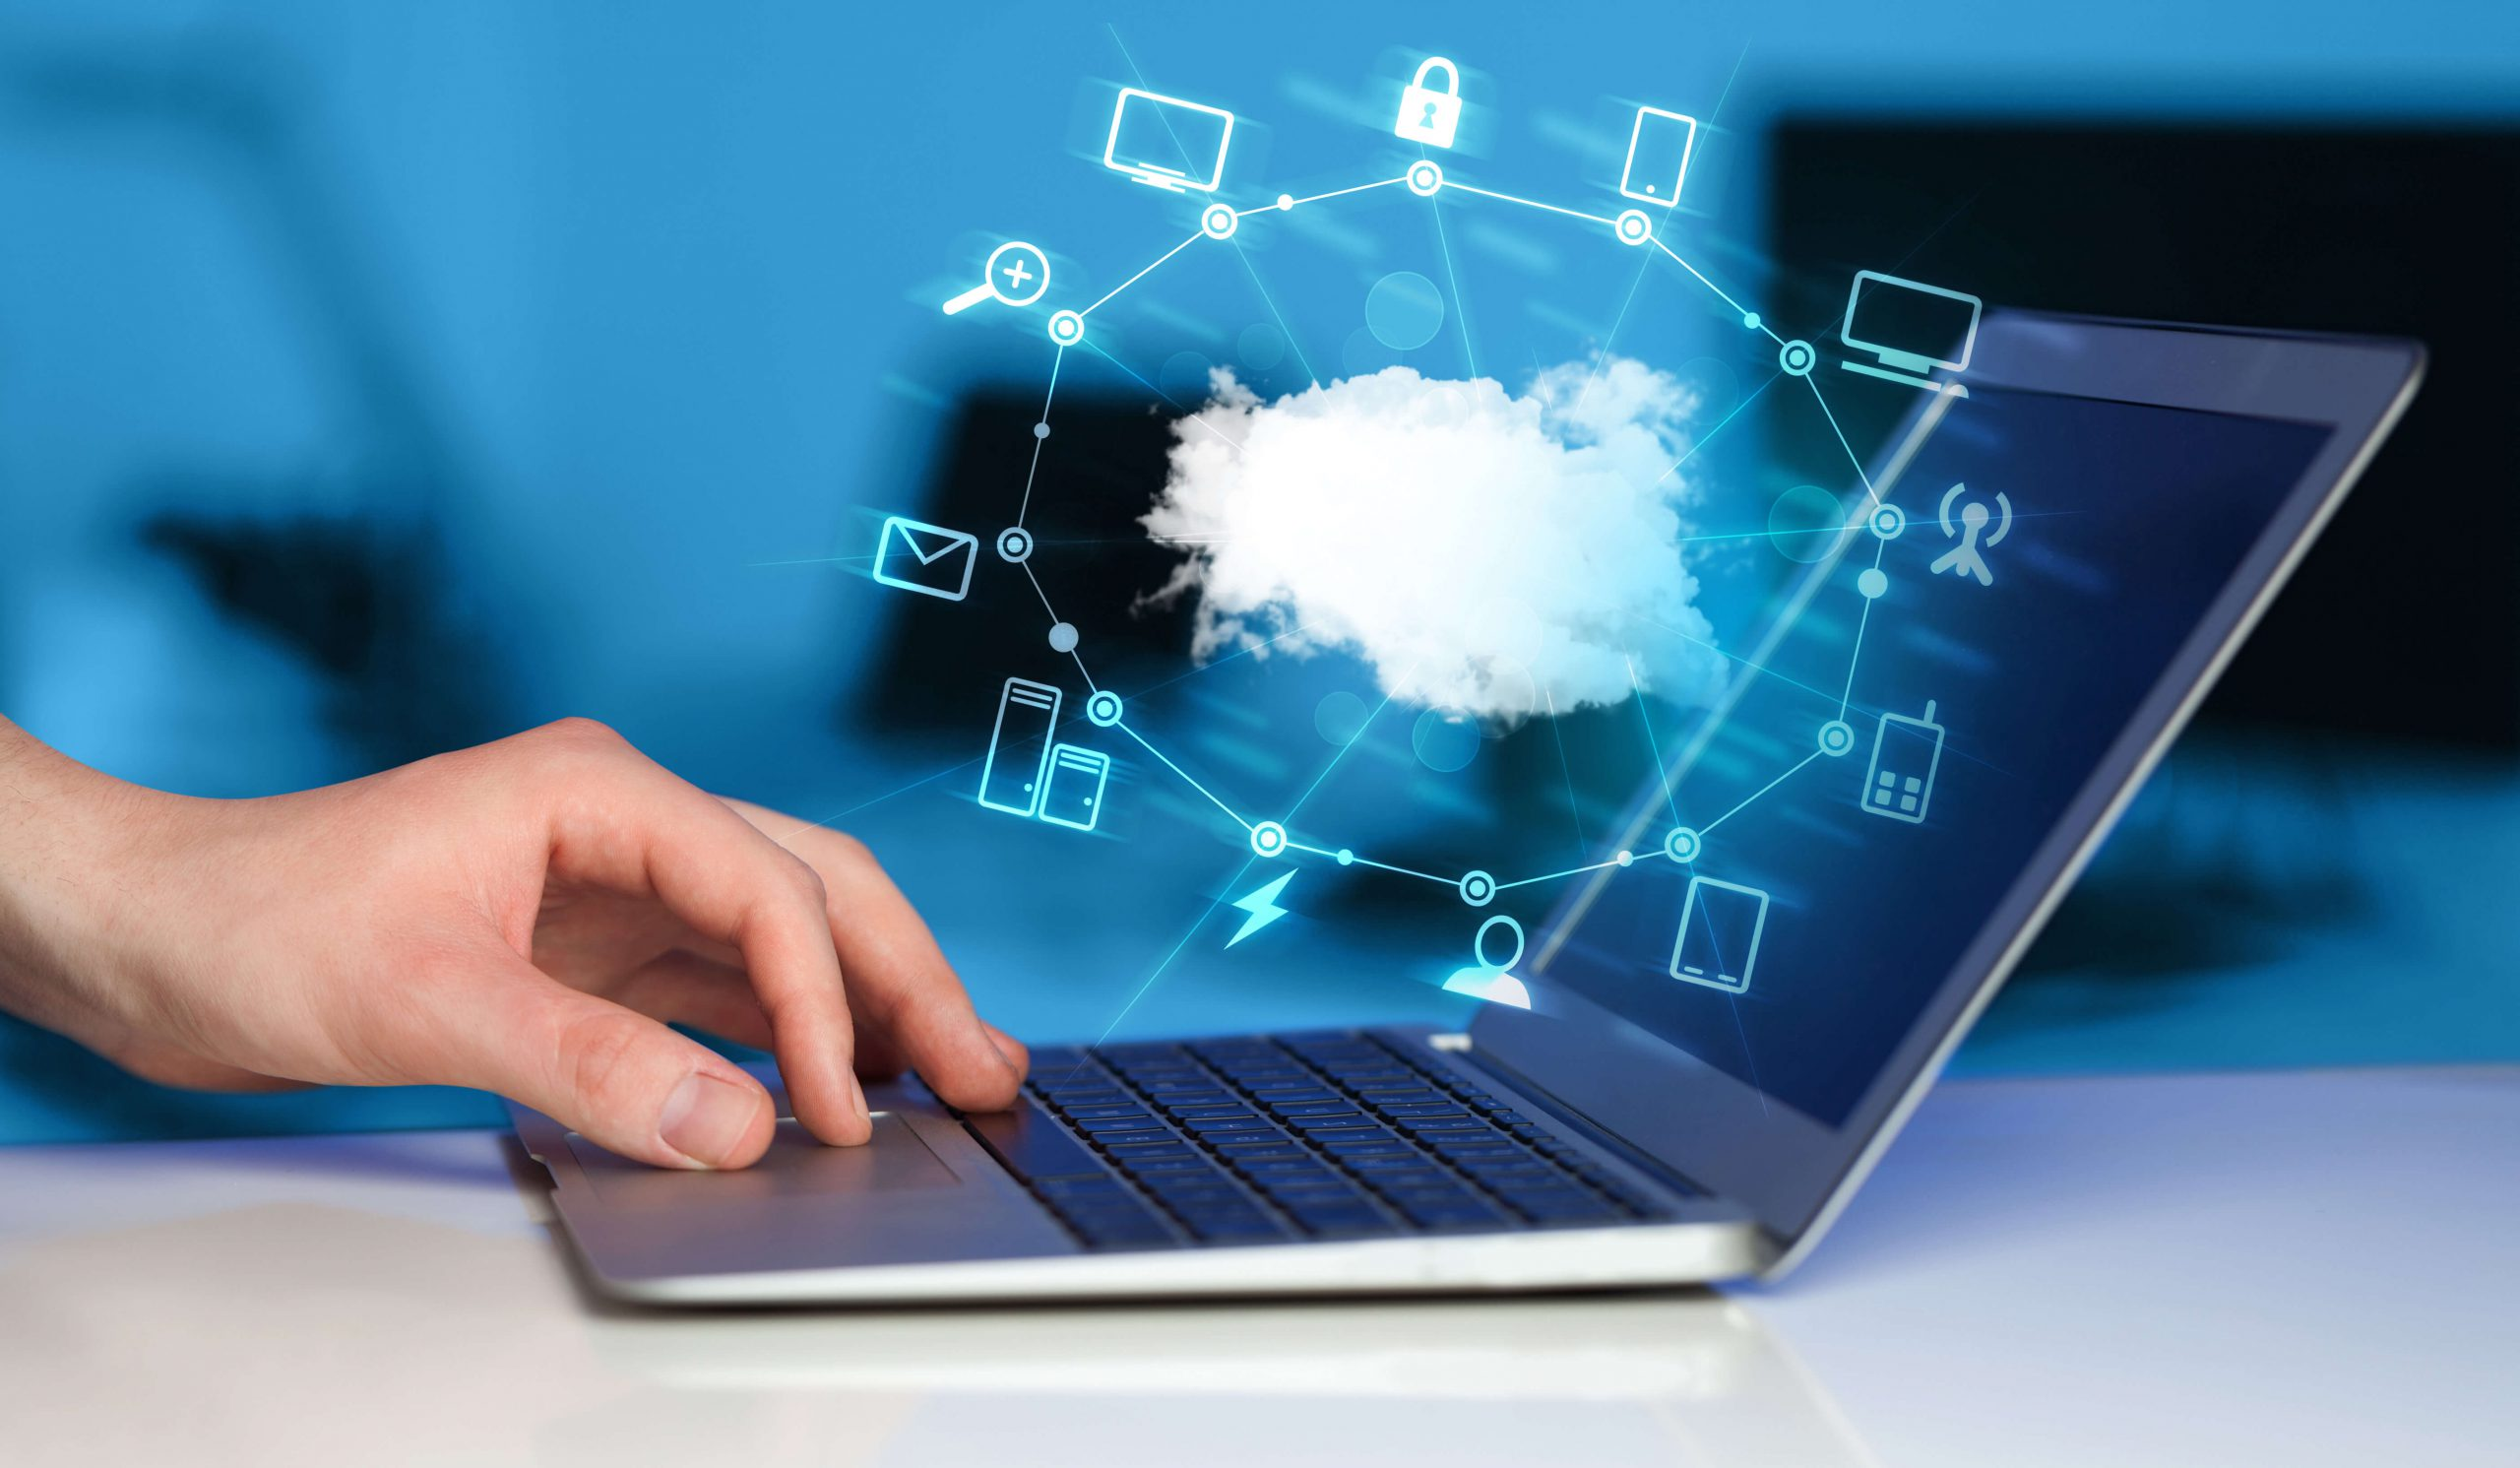 conceptual icons for connectivity surround a cloud hovering over a laptop